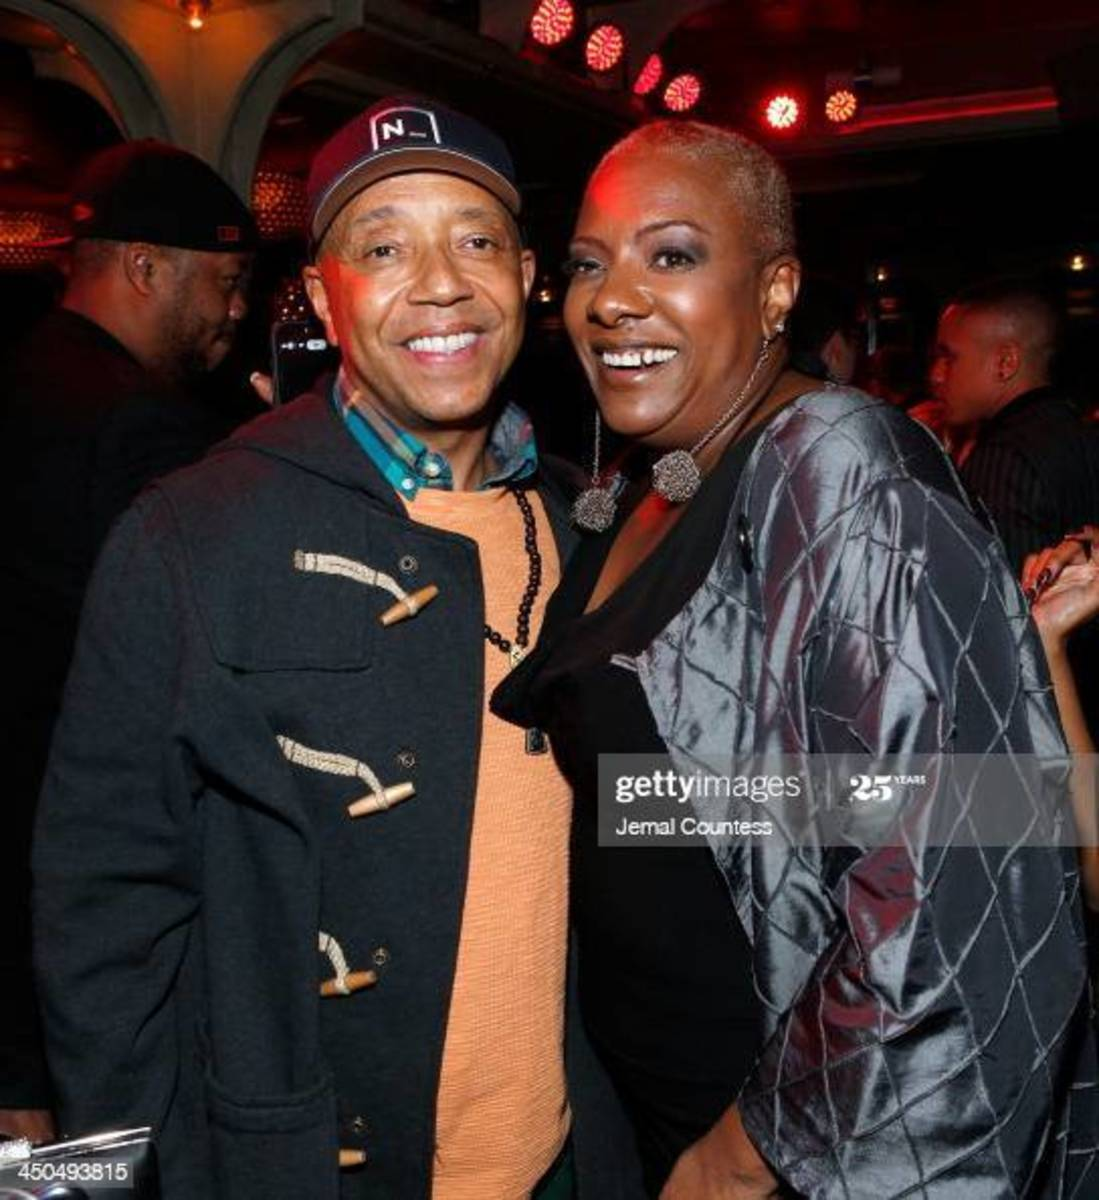 Alyson reunited with one of her earlier mentors and Def Jam label founder, Russell Simmons